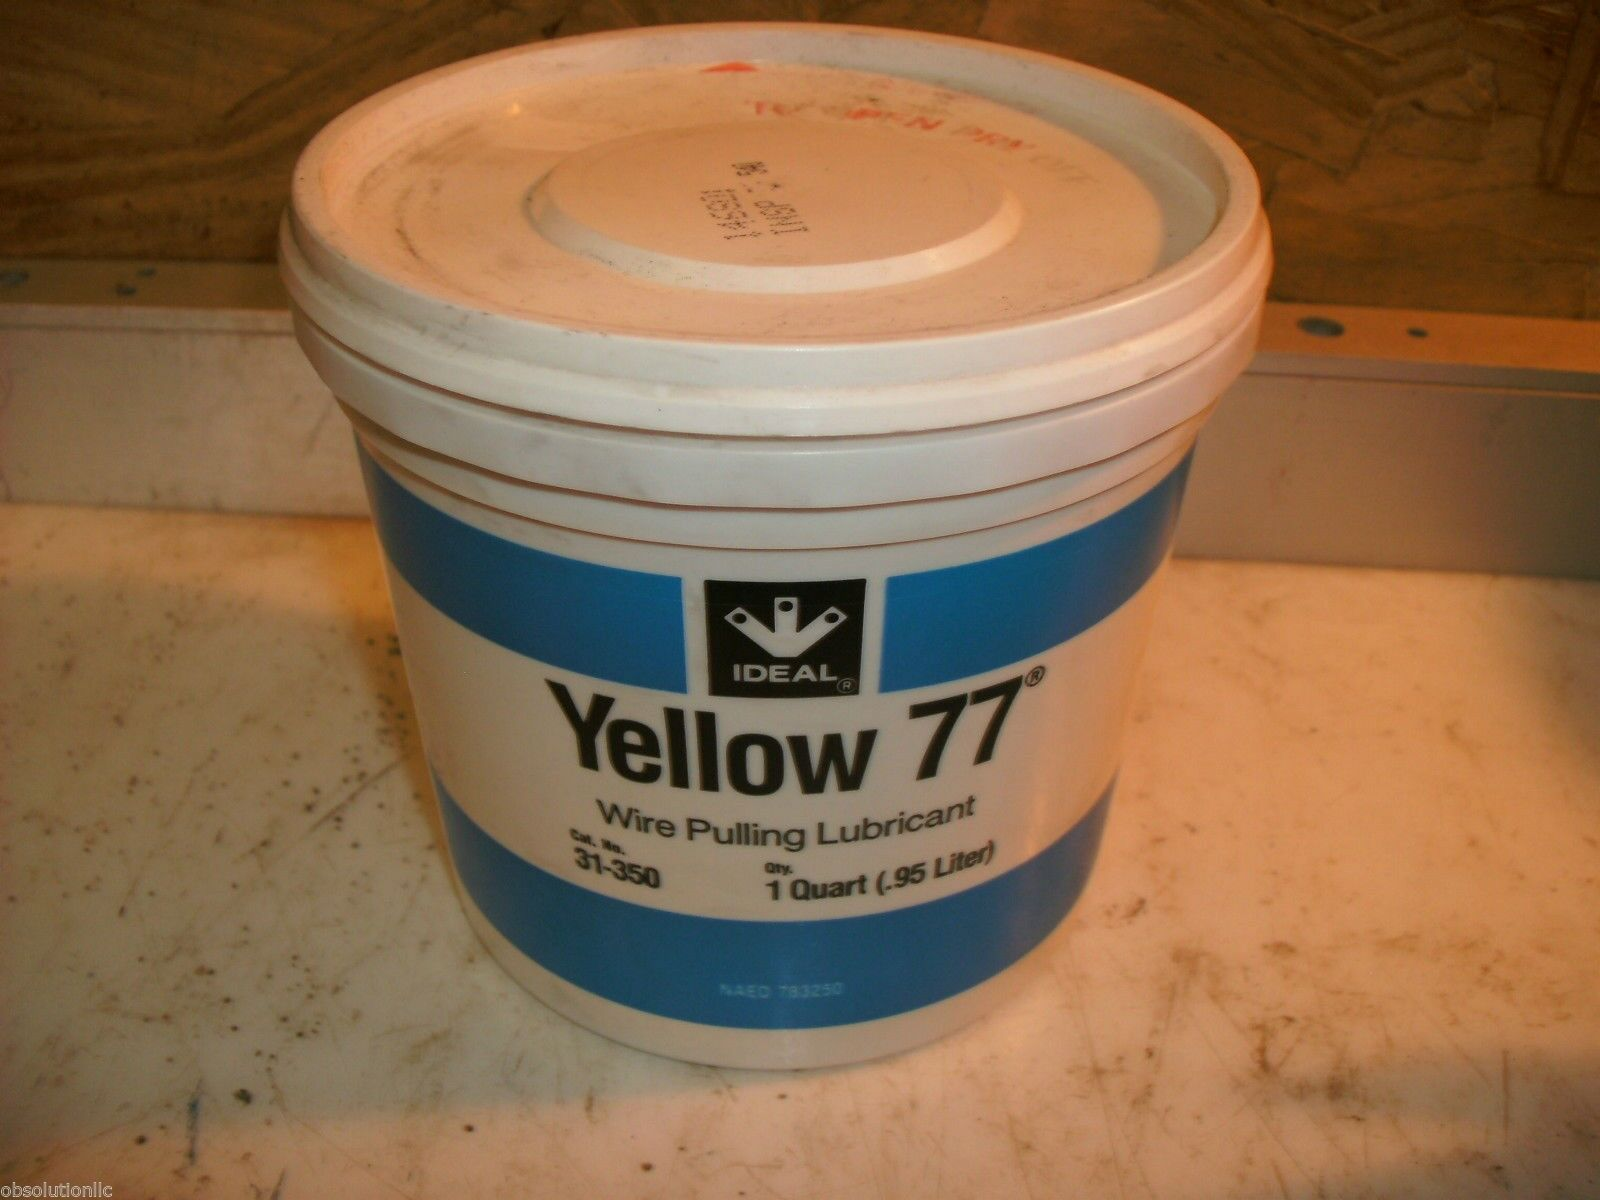 Ideal Yellow 77 Wire Pulling Lubricant 1-quart Tub 31-350 | eBay